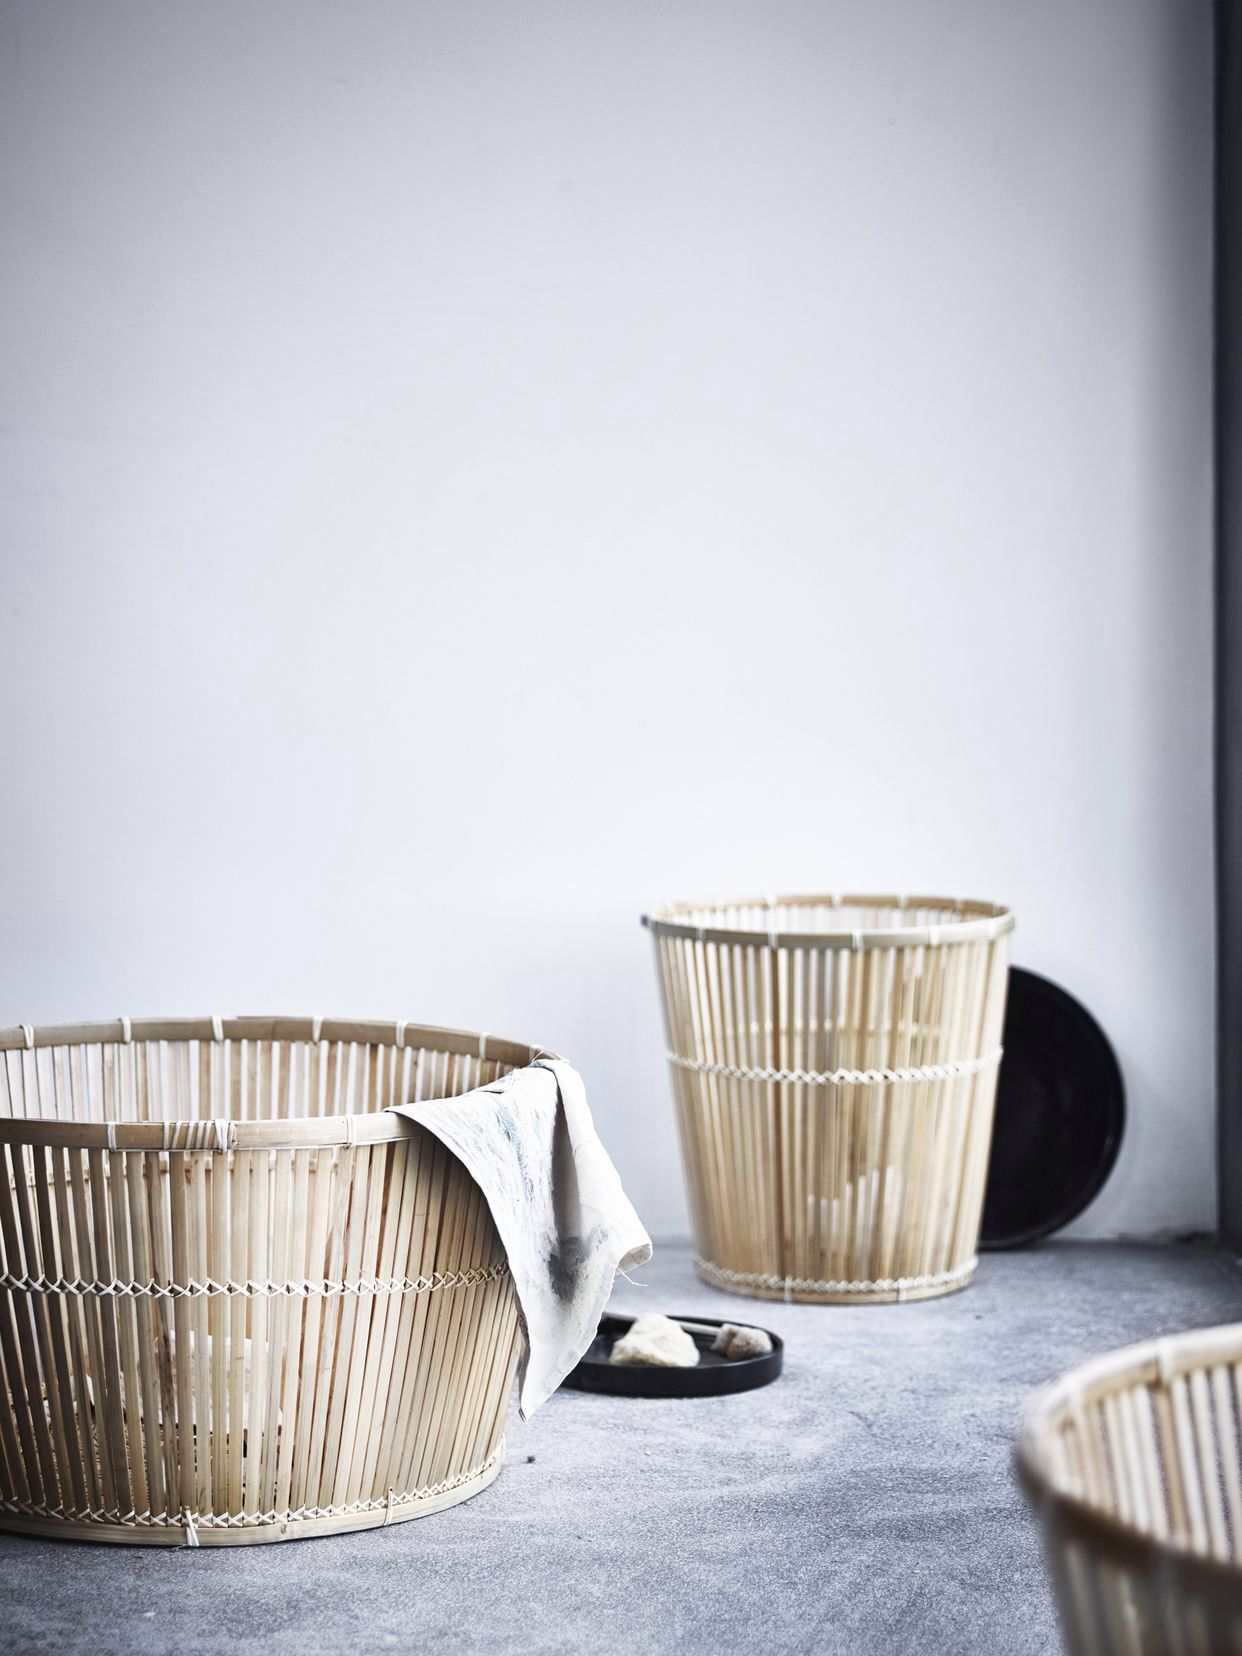 Pin De Sanna En Baskets Pinterest # Muebles Bambu Bano